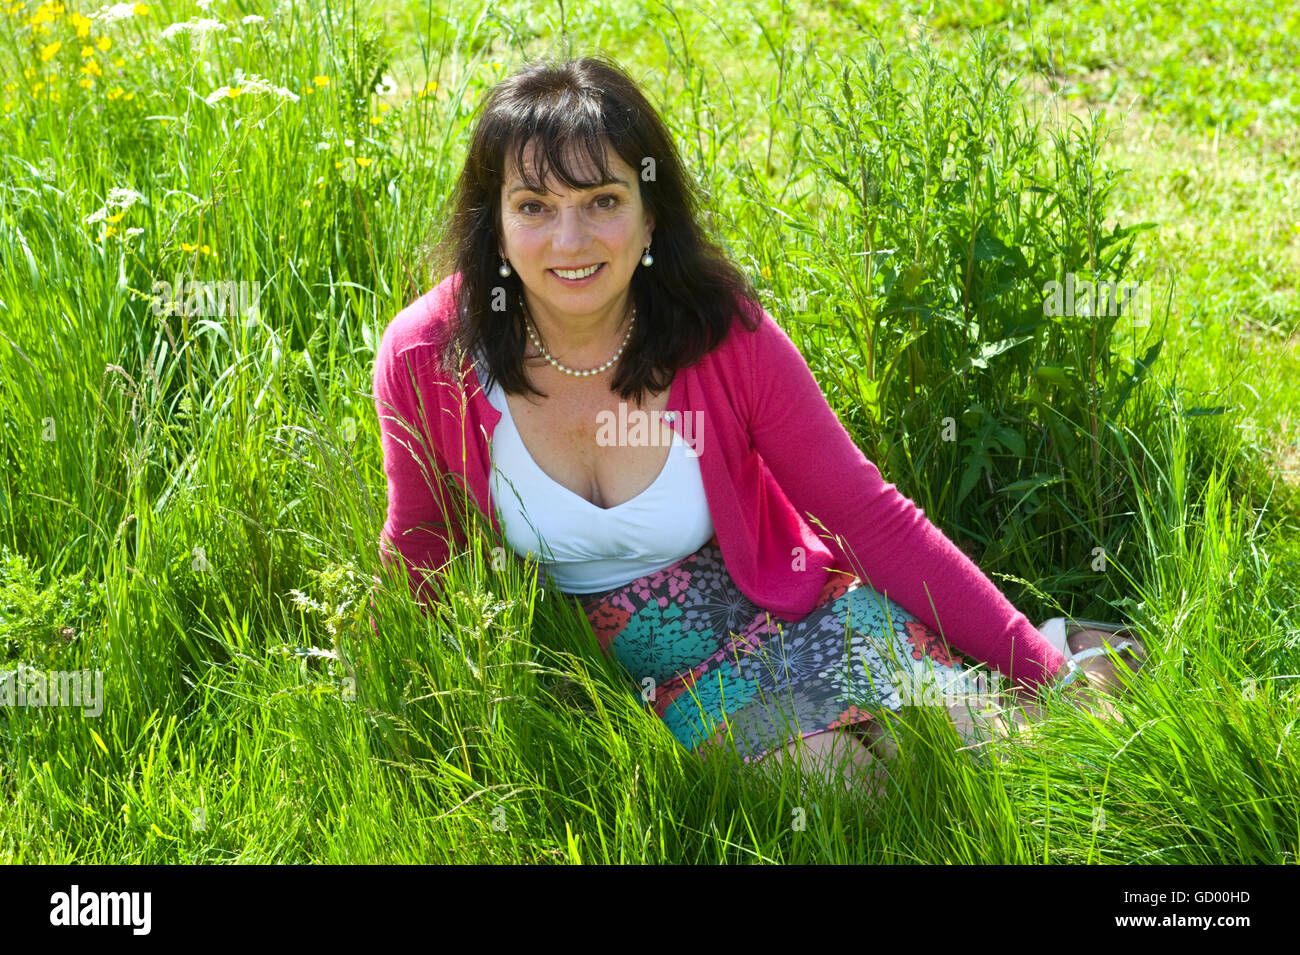 Lucy Pinney who writes about finding love in the countryside pictured at Hay Festival 2016 - Stock Image